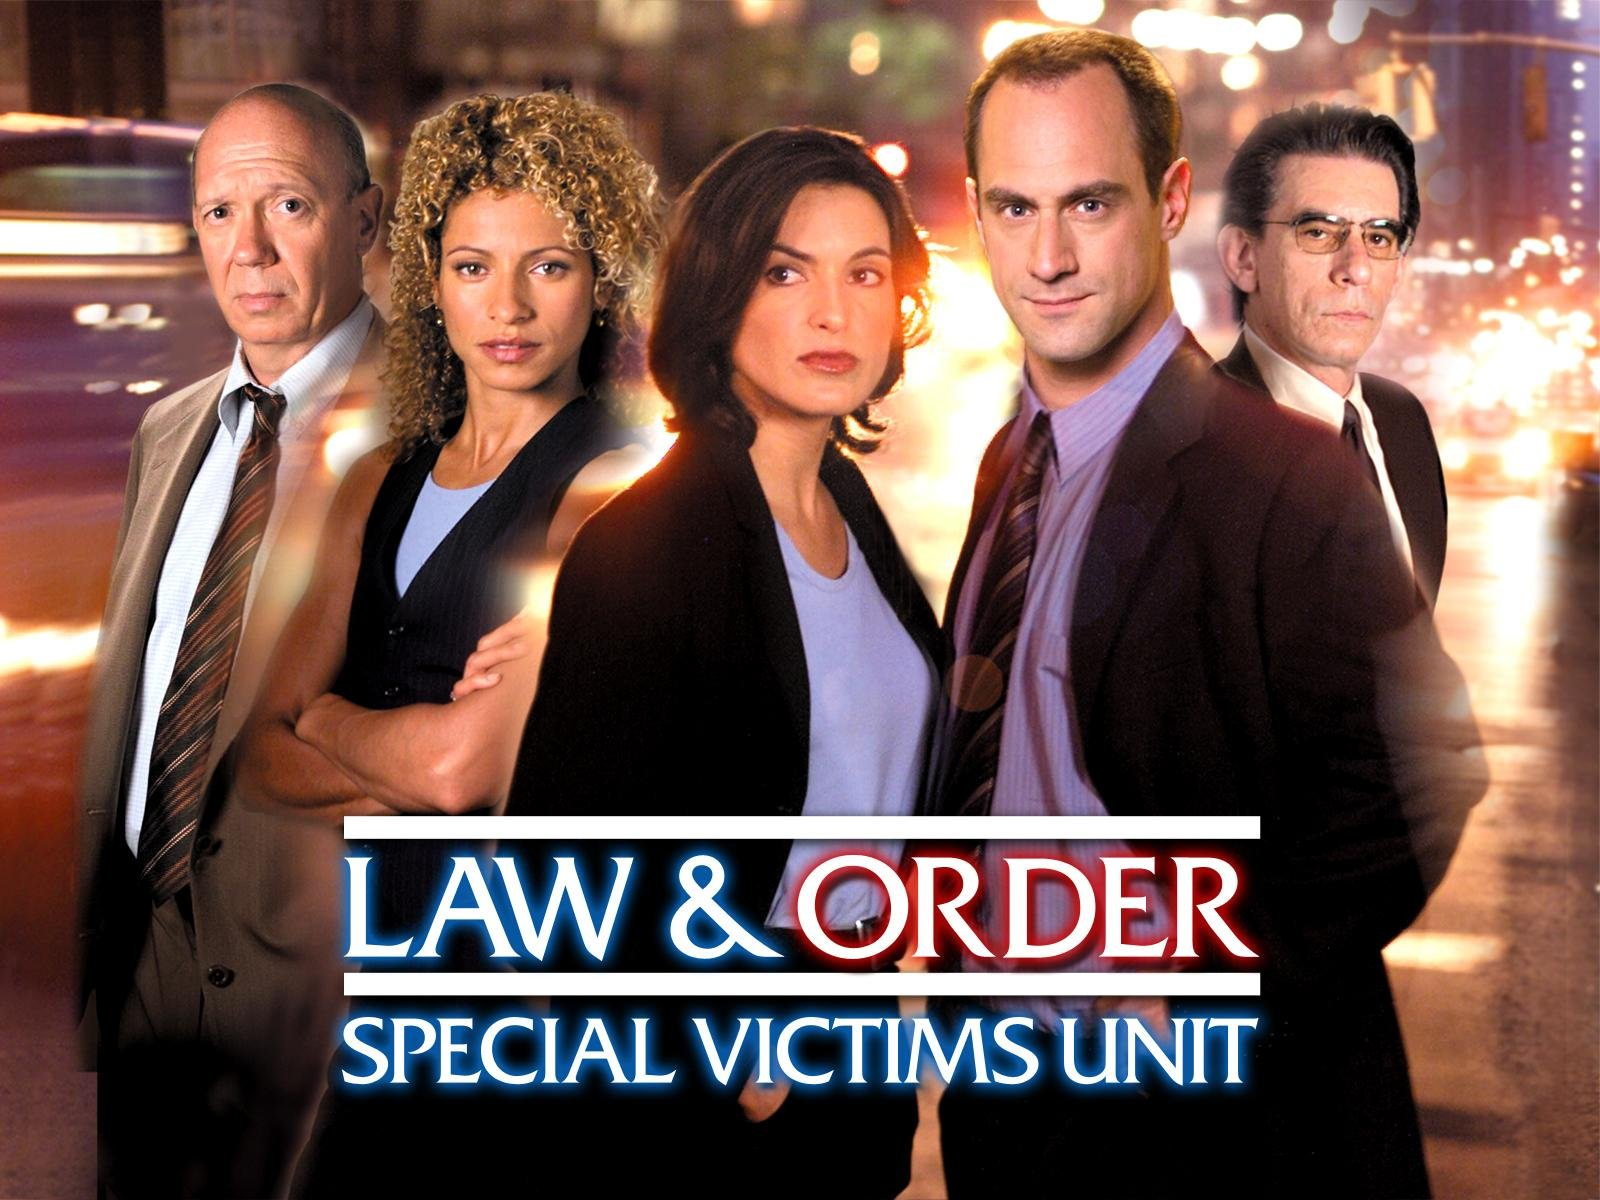 law and order special victims unit season 11 episode 21